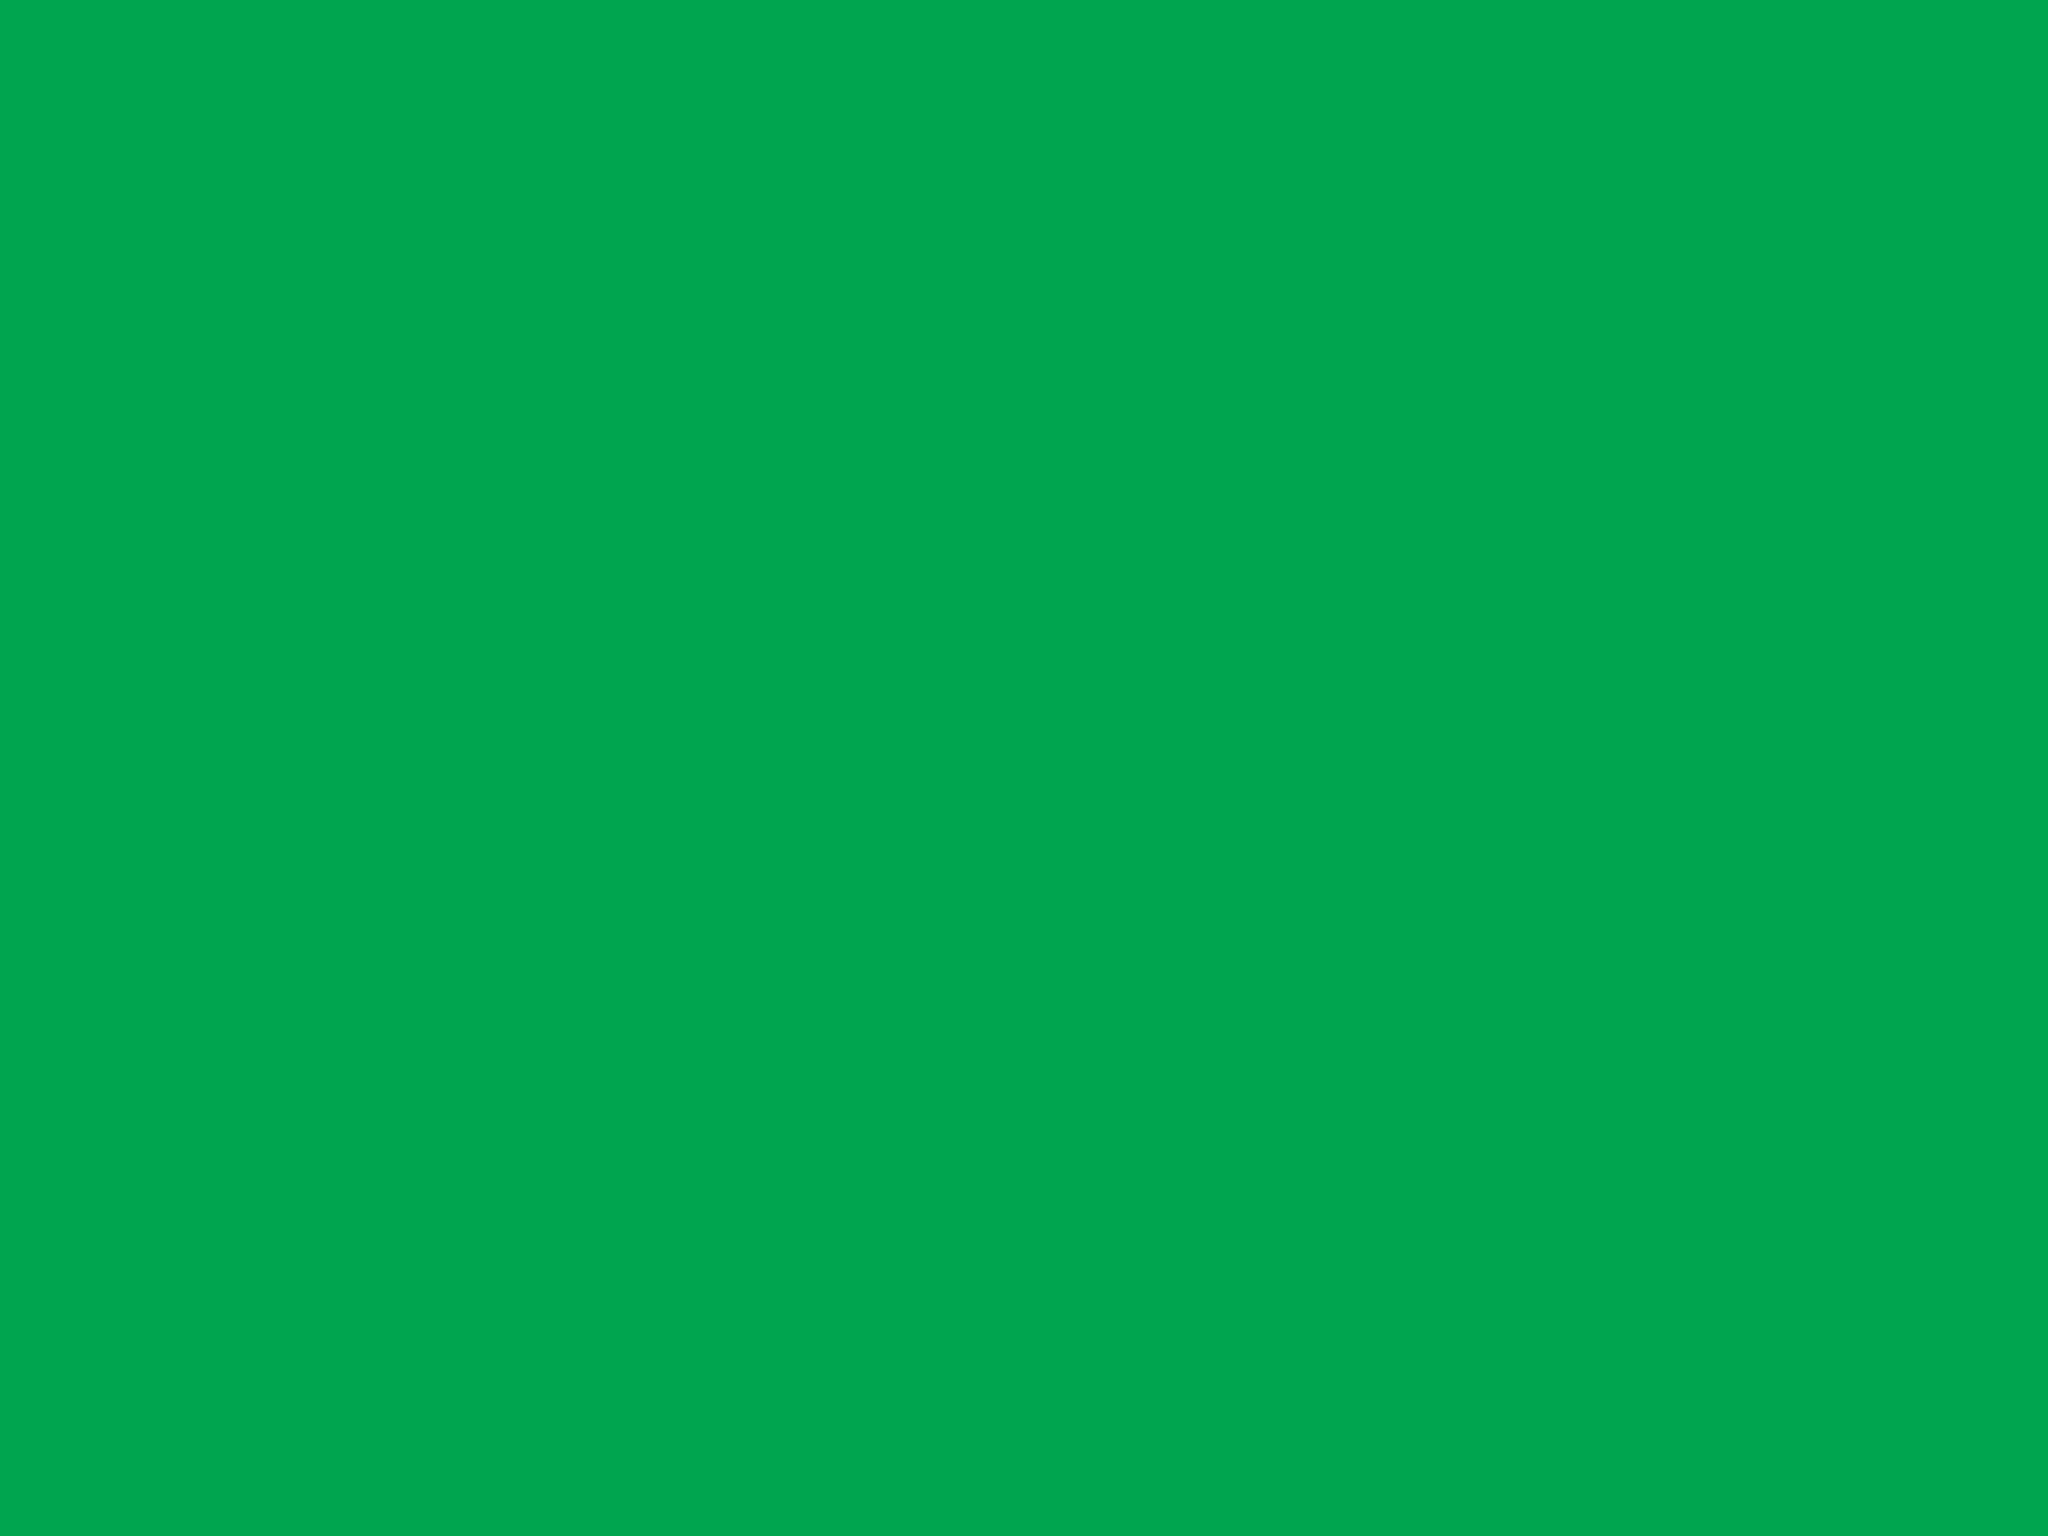 2048x1536 Green Pigment Solid Color Background